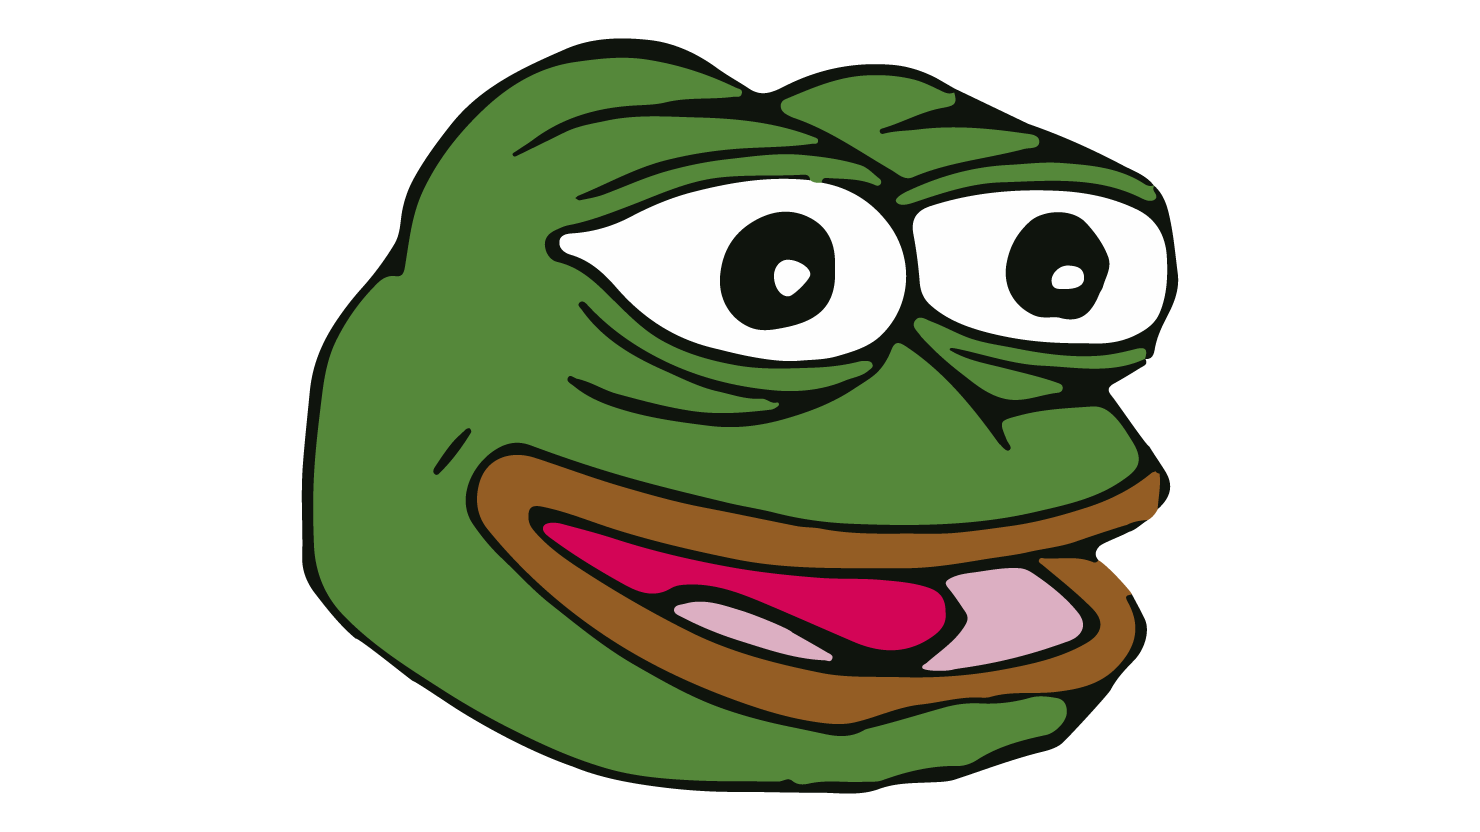 Funny Frog Cartoon Meme : Feels good man know your meme